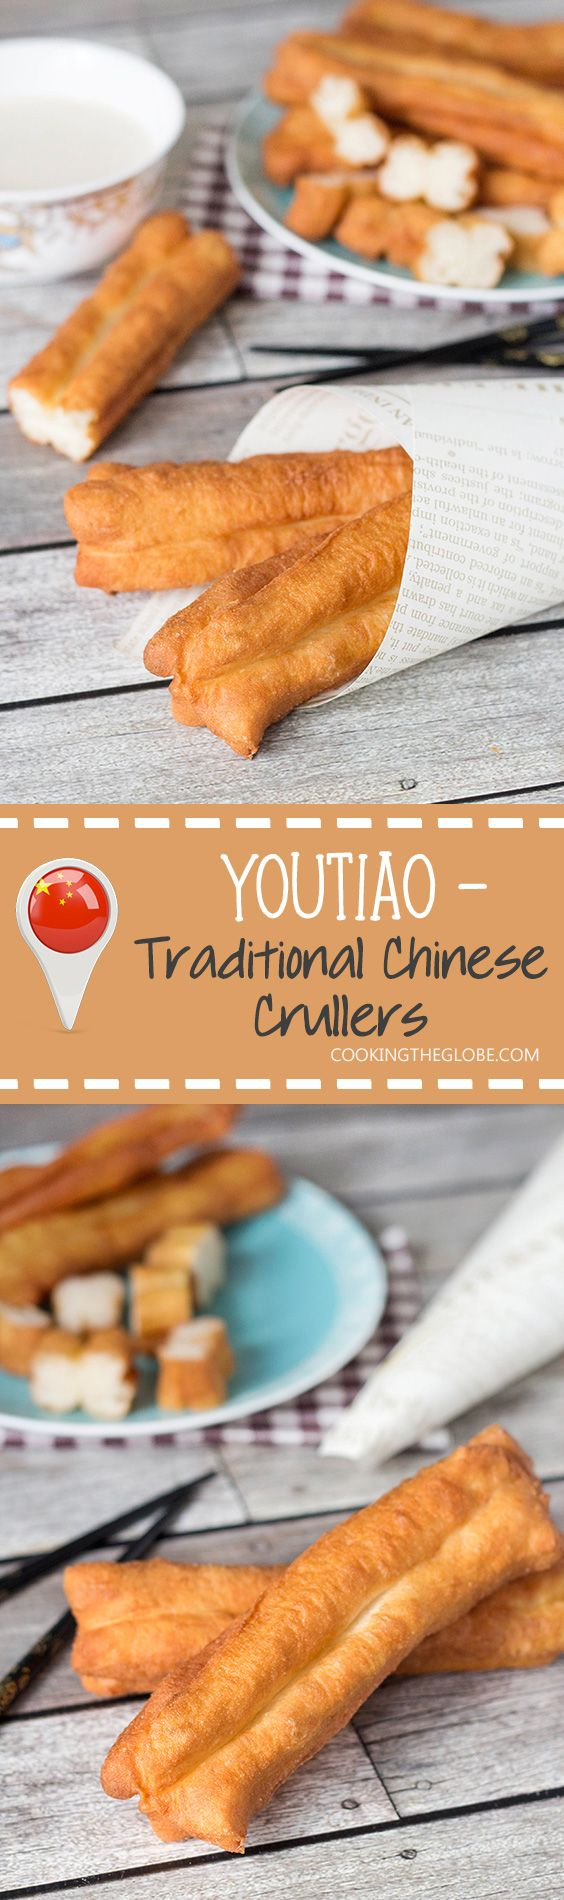 These Chinese Crullers, or Chinese donuts, called Youtiao, are a traditional breakfast staple in China. They can be enjoyed as a standalone dish or dipped in a warm soy milk! | cookingtheglobe.com